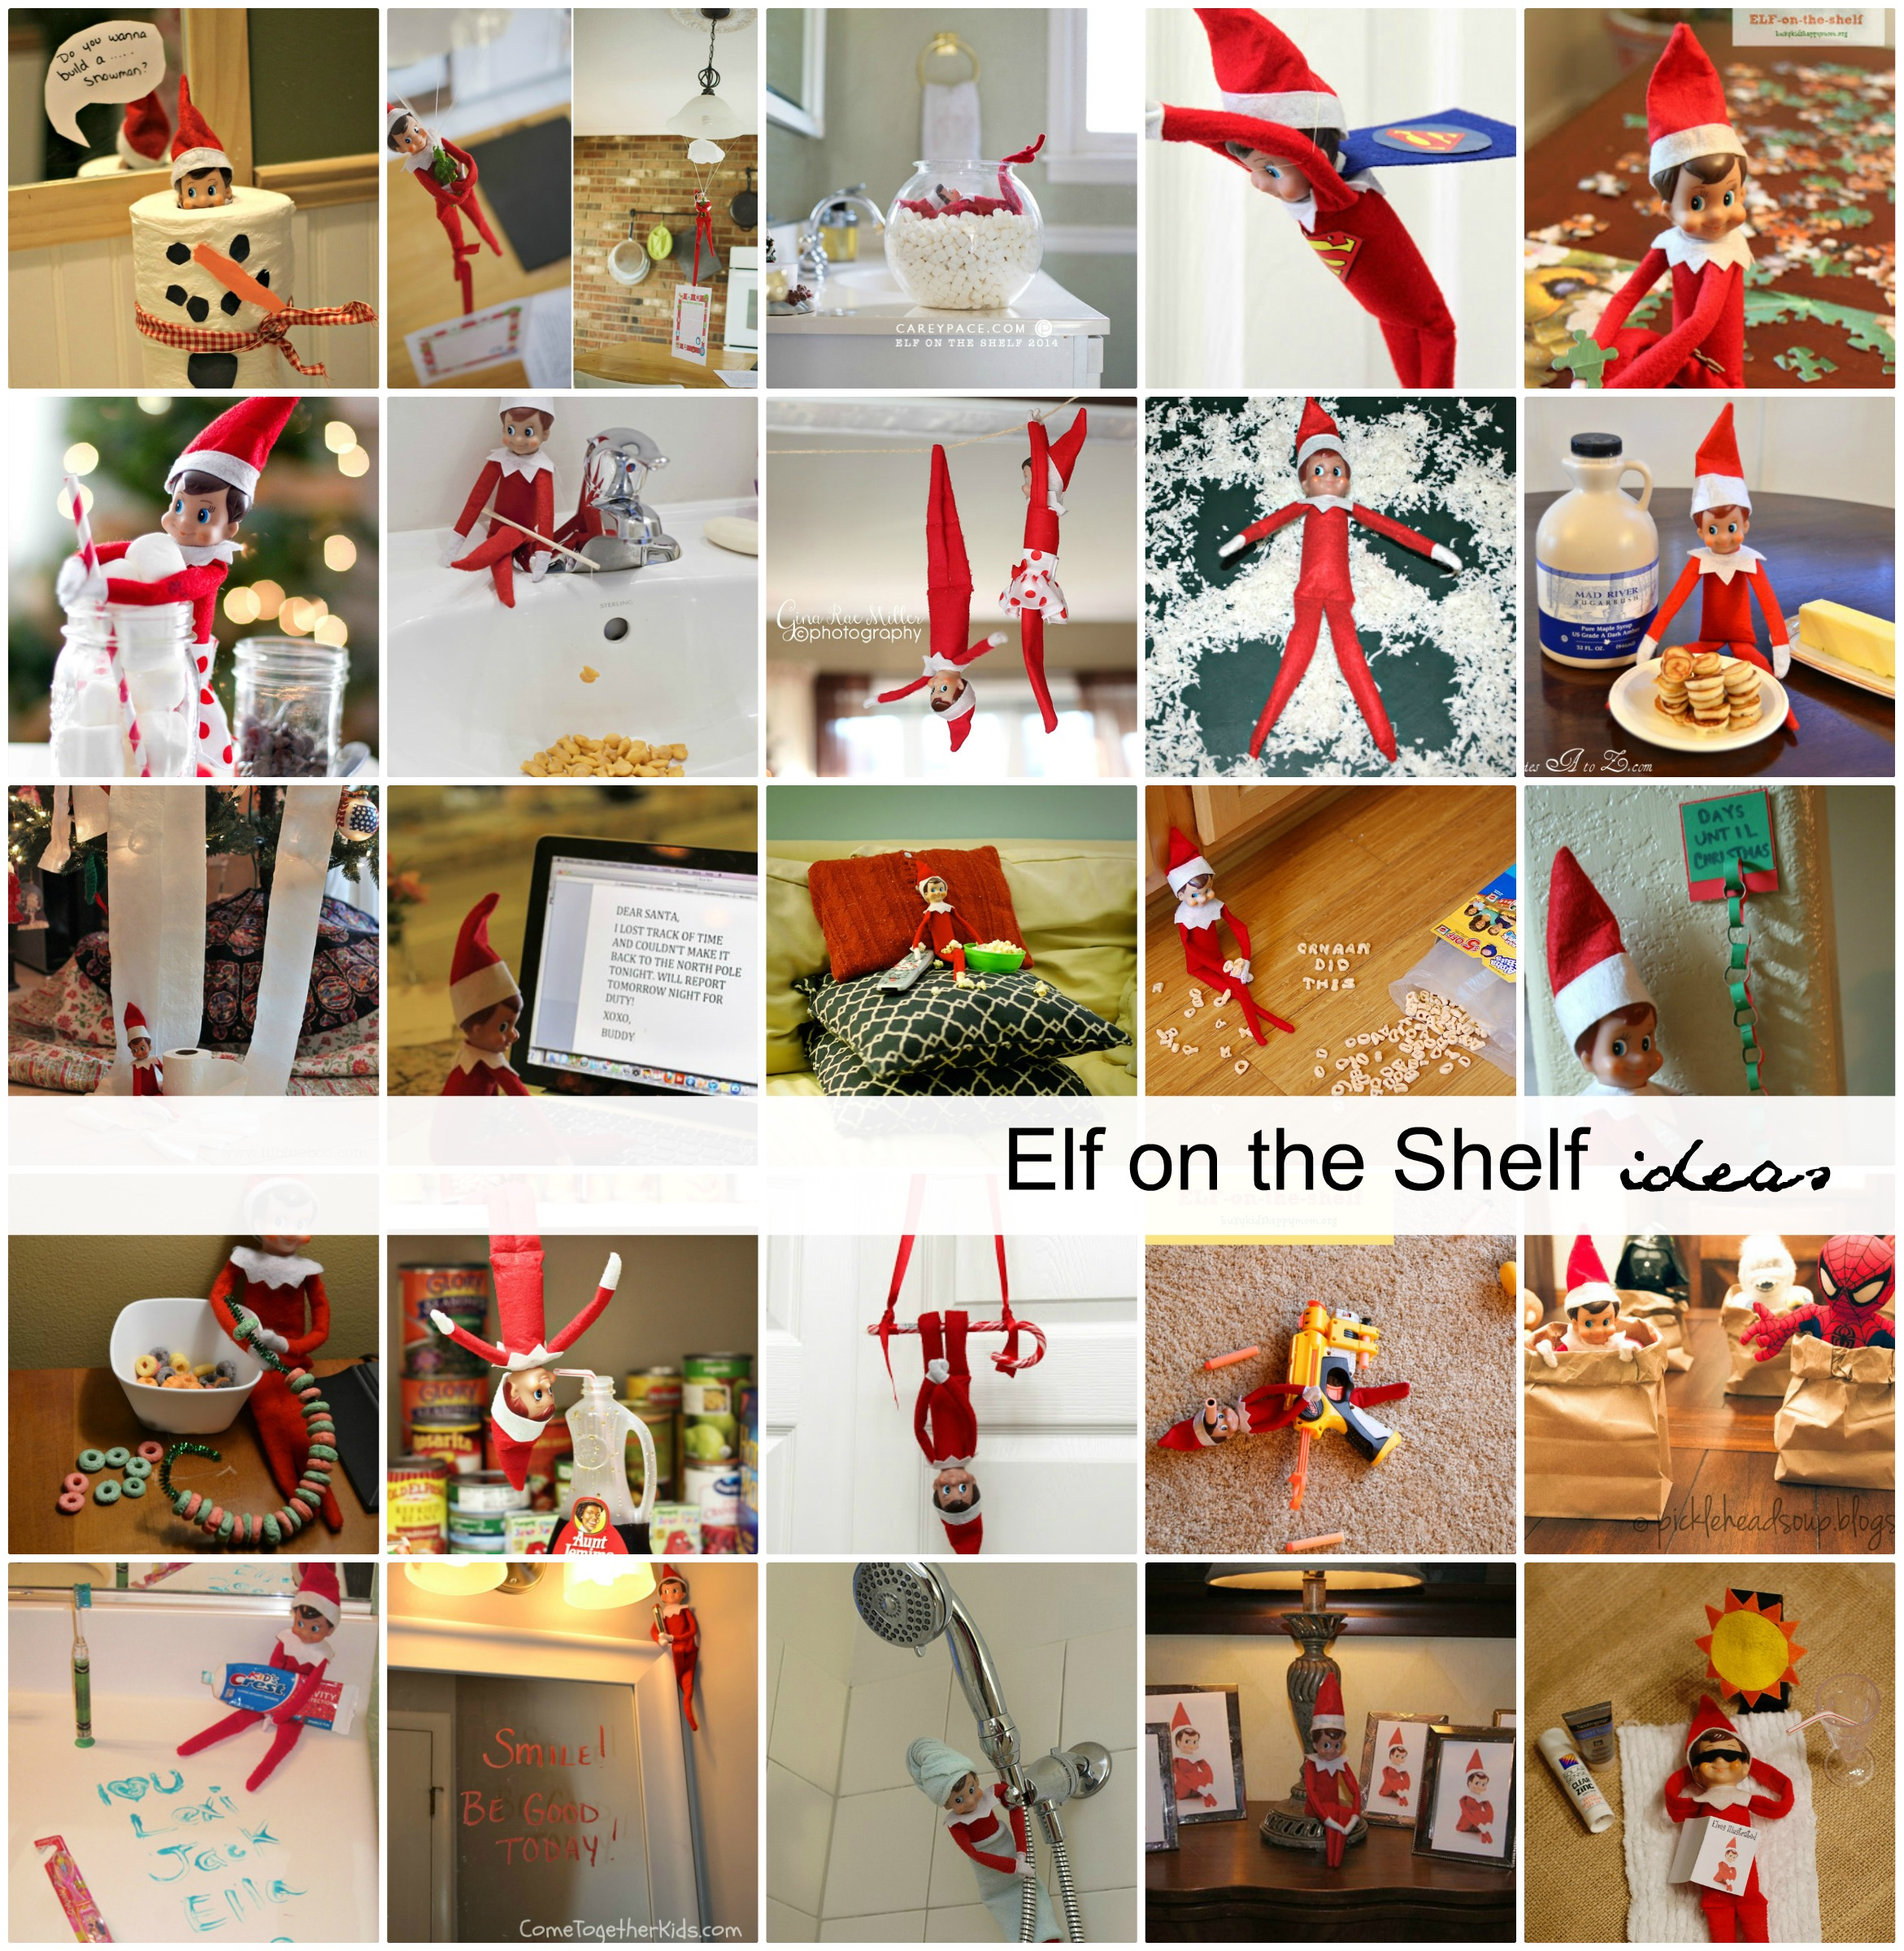 Elf-on-the-Shelf-Ideas-1 (1)